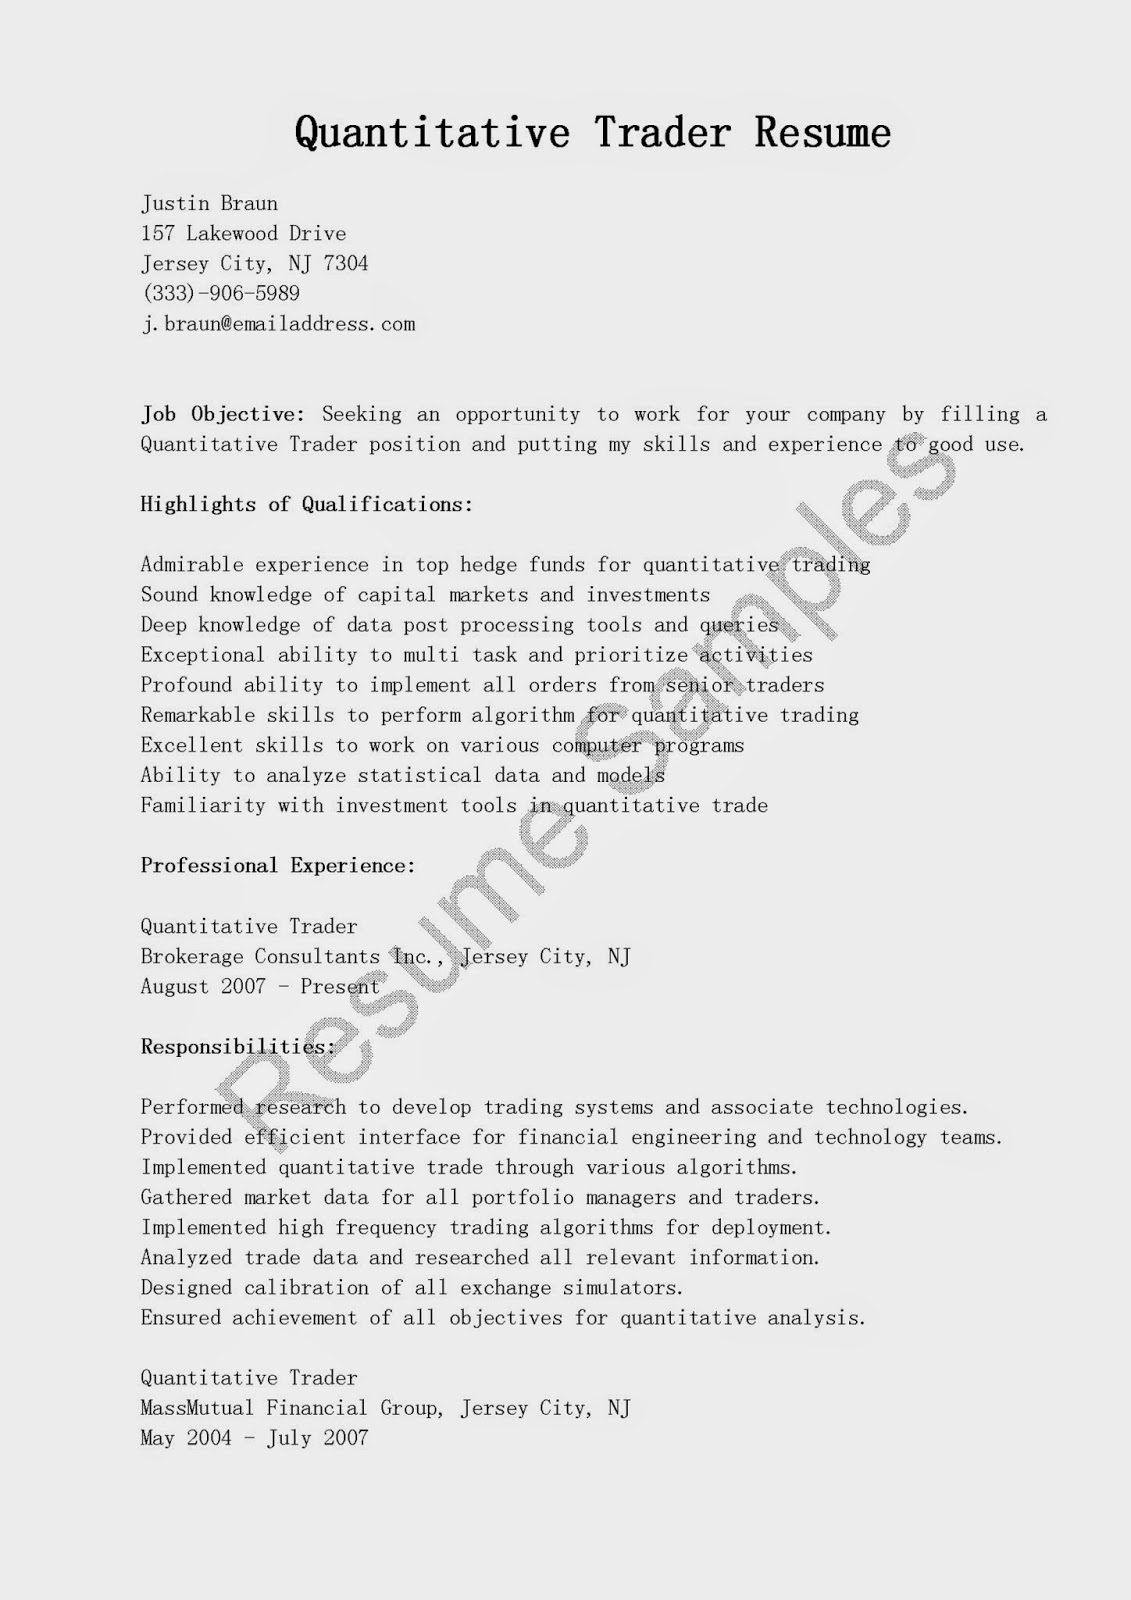 Template Customer Service Cover Letters For Resumes READ MORE